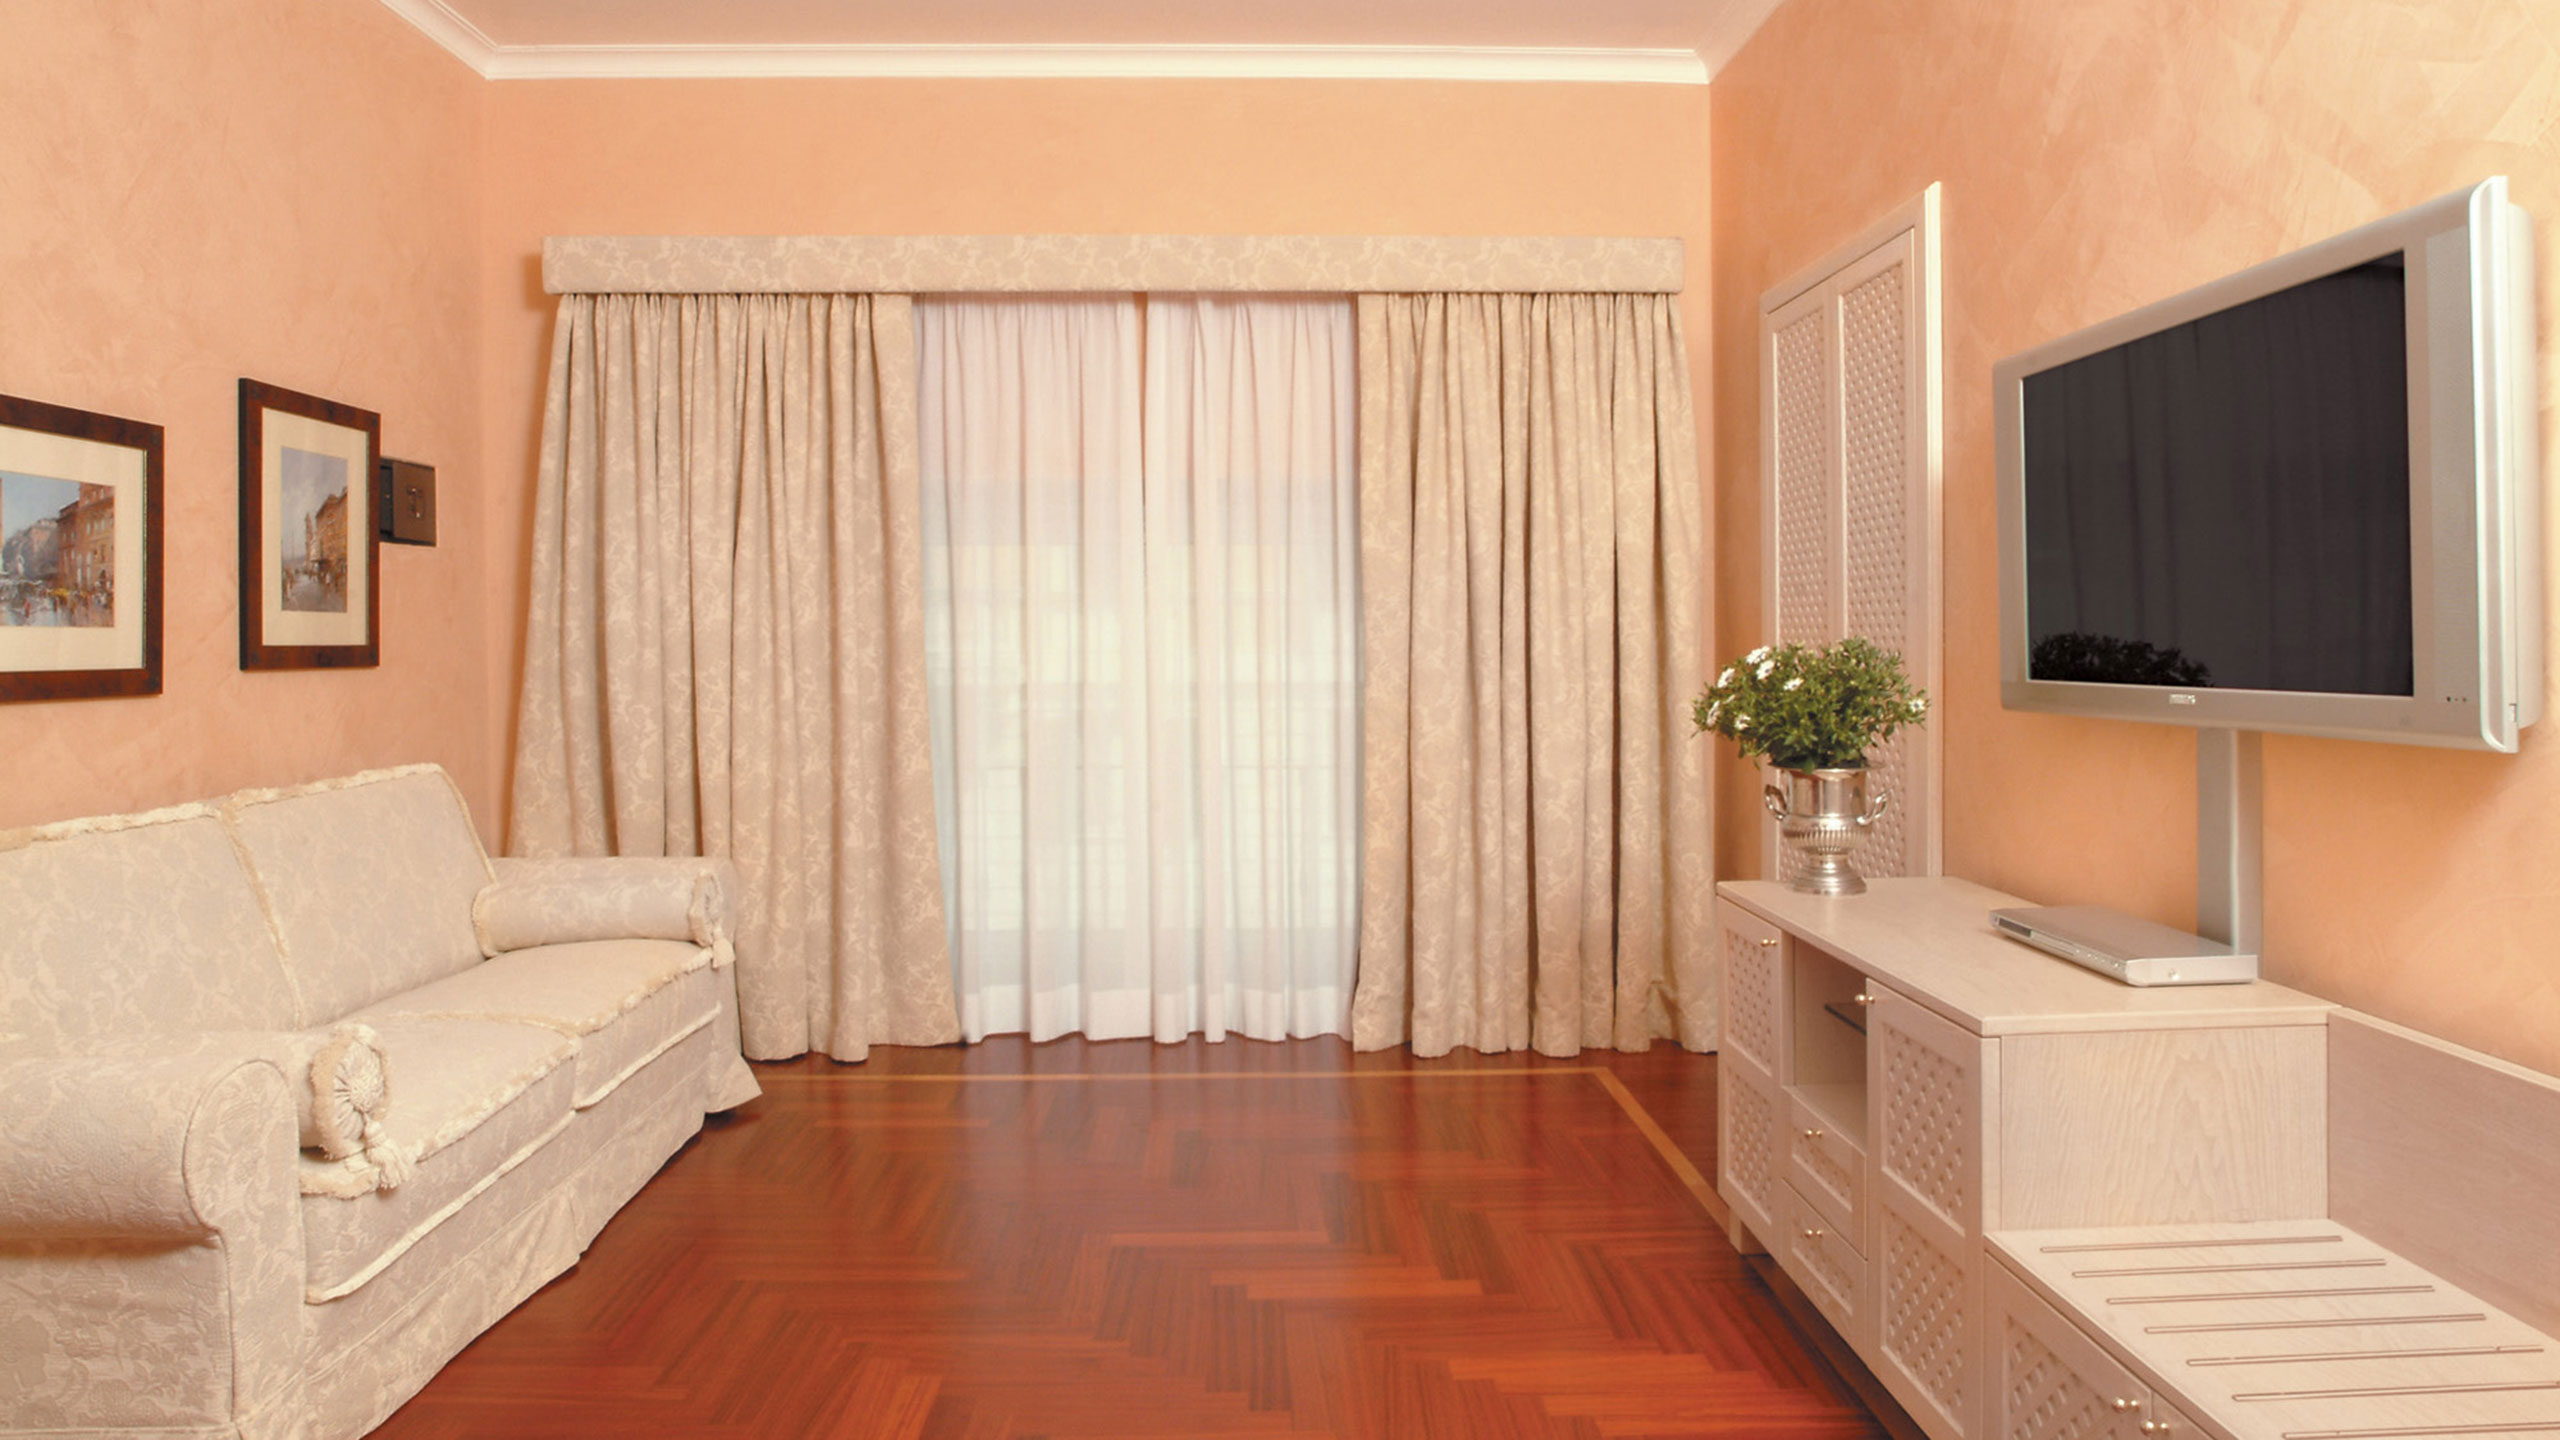 colosseo-suites-rome-chambres-01